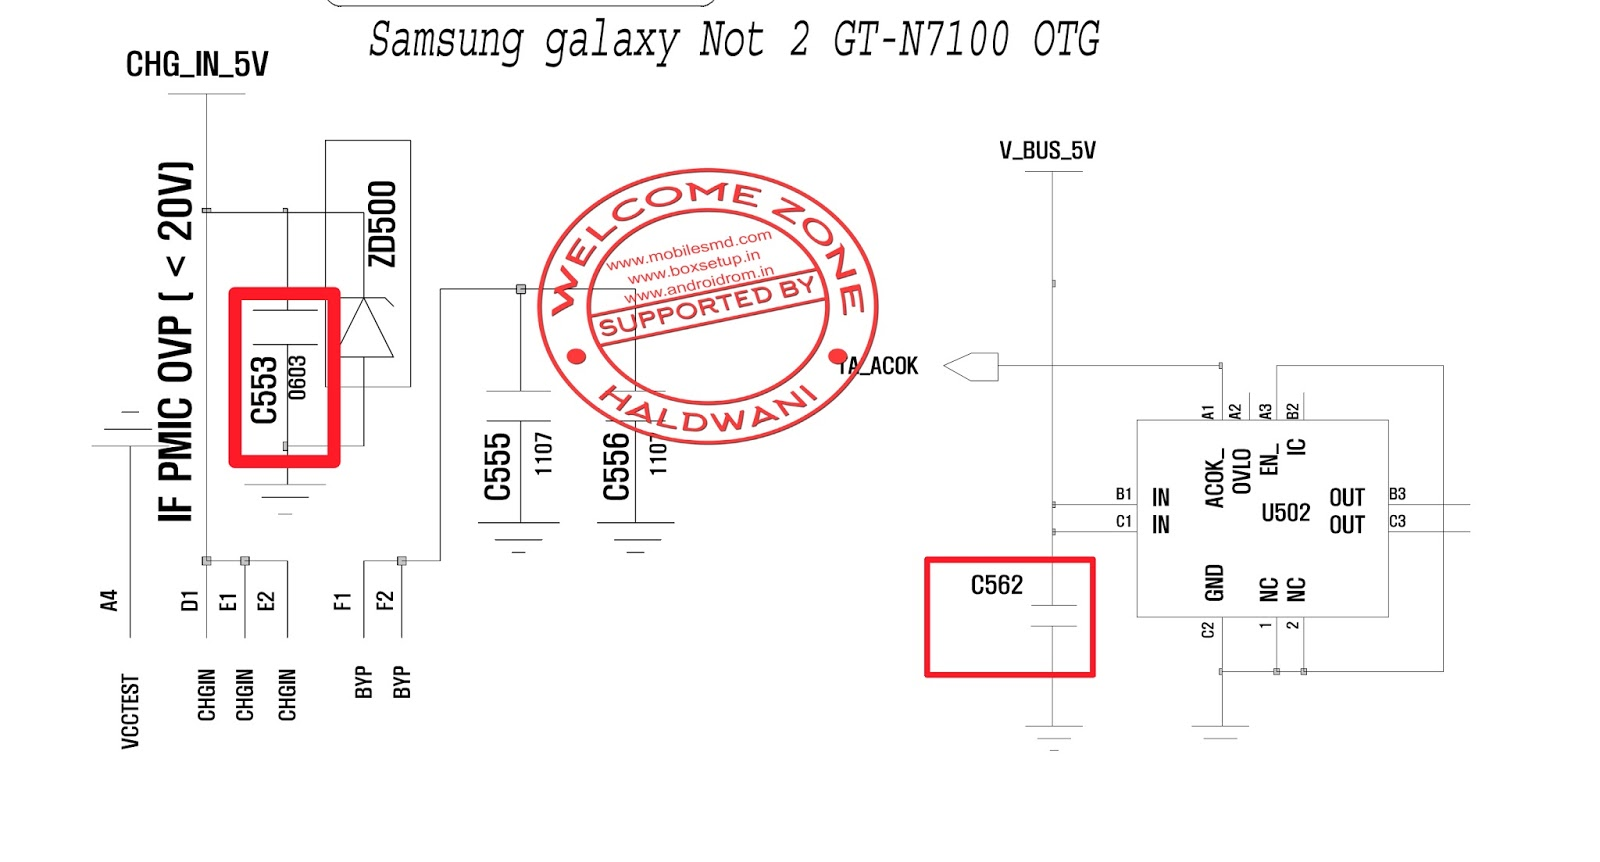 otg circuit diagram otg image wiring diagram samsung galaxy not 2 gt n7100 otg not working solution on otg circuit diagram